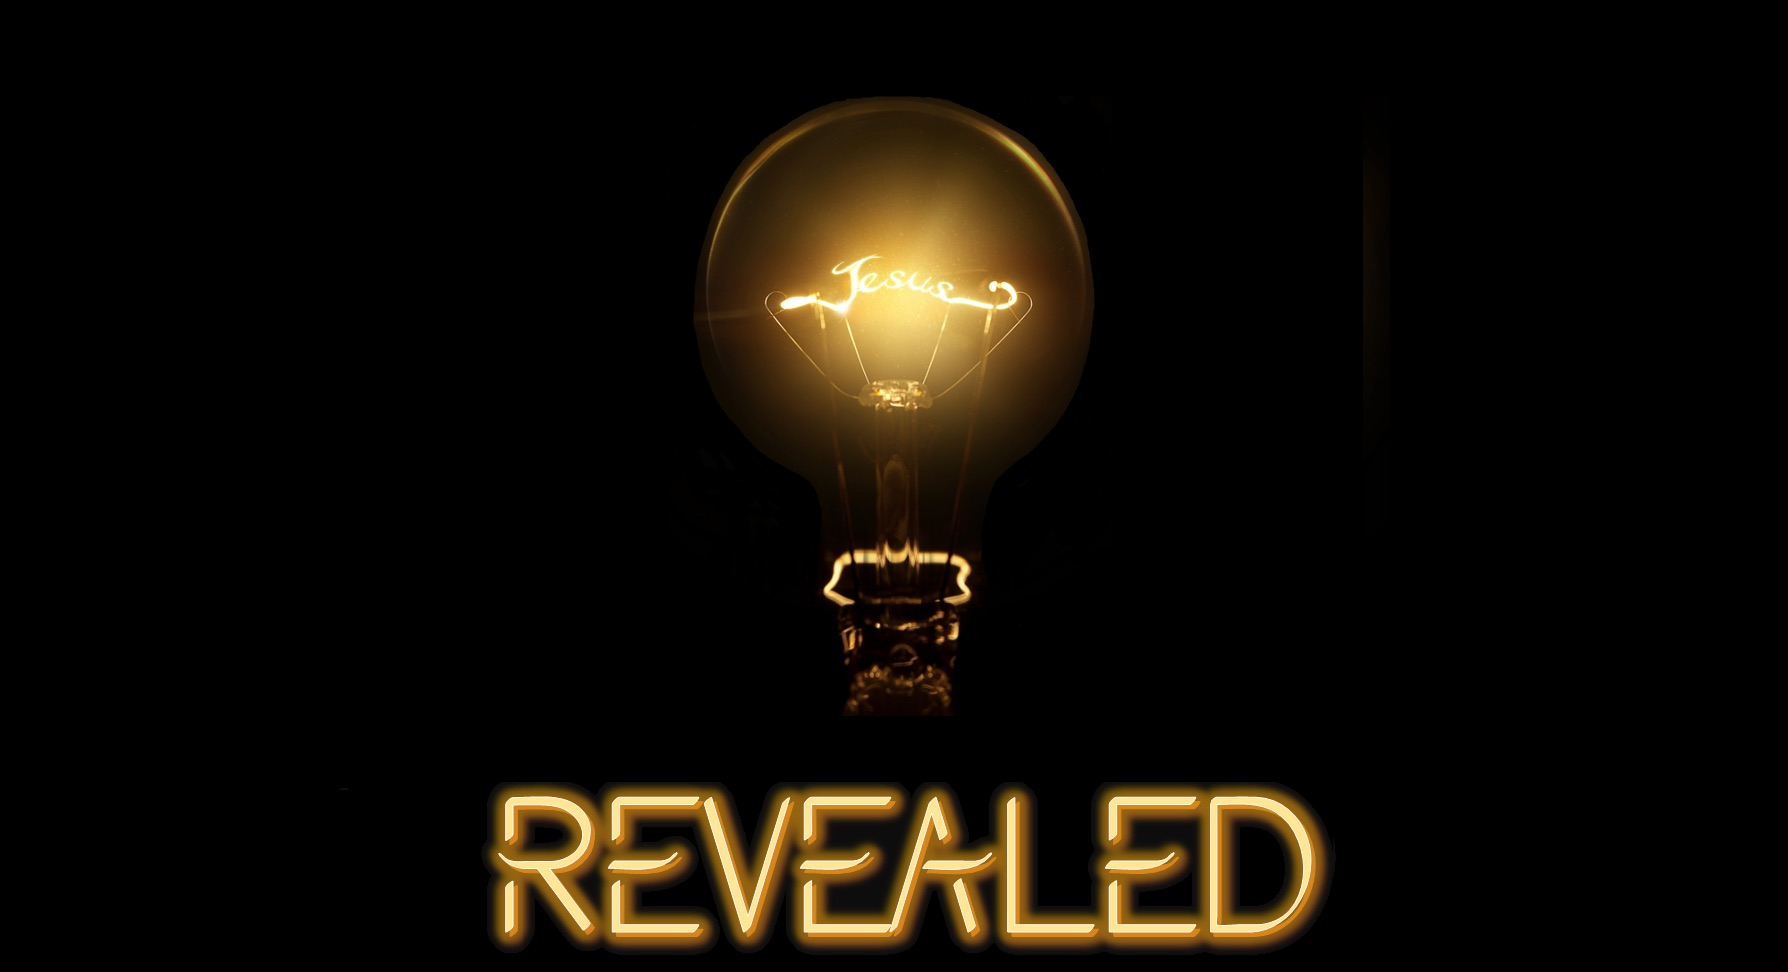 Revealed - Join us as we explore feature passages in the book of John that reveal the person of Jesus.  We pray the Lord illuminates your life through this powerful series!